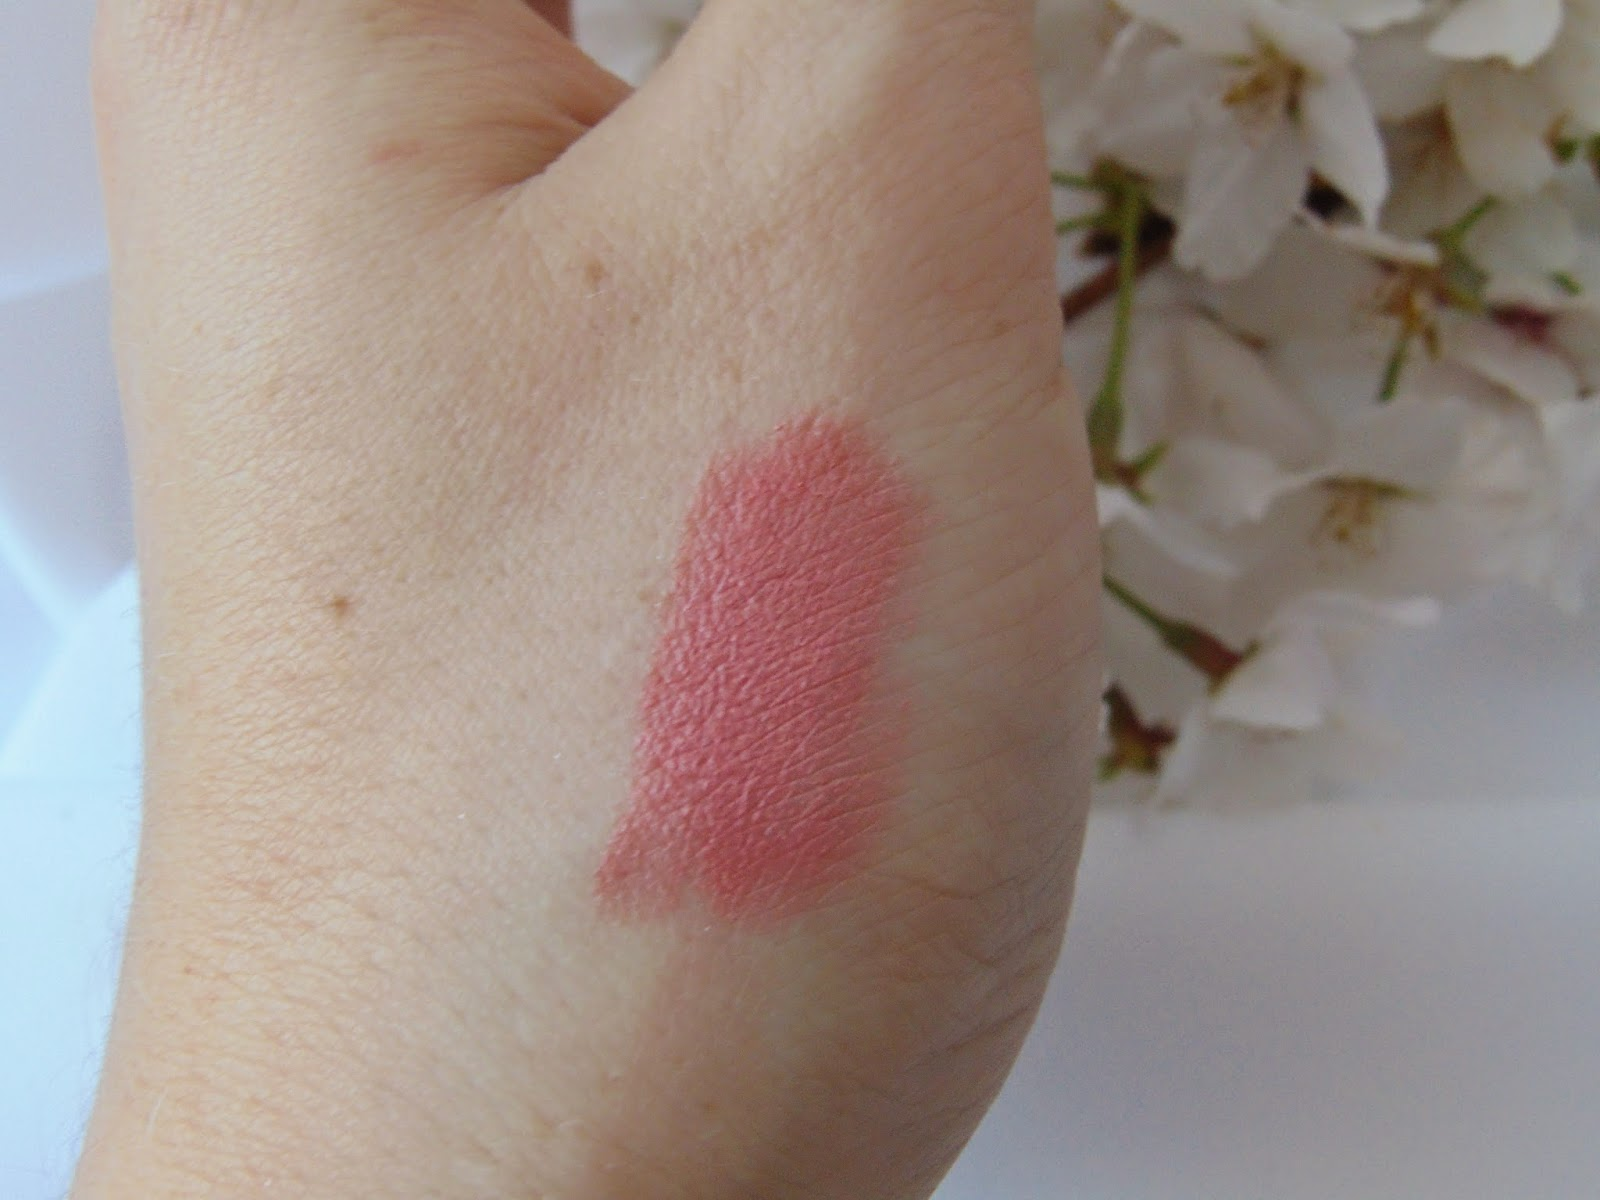 p2 Long Lasting Shine - Lippenstift - 010 endless Rose Swatch - www.annitschkasblog.de